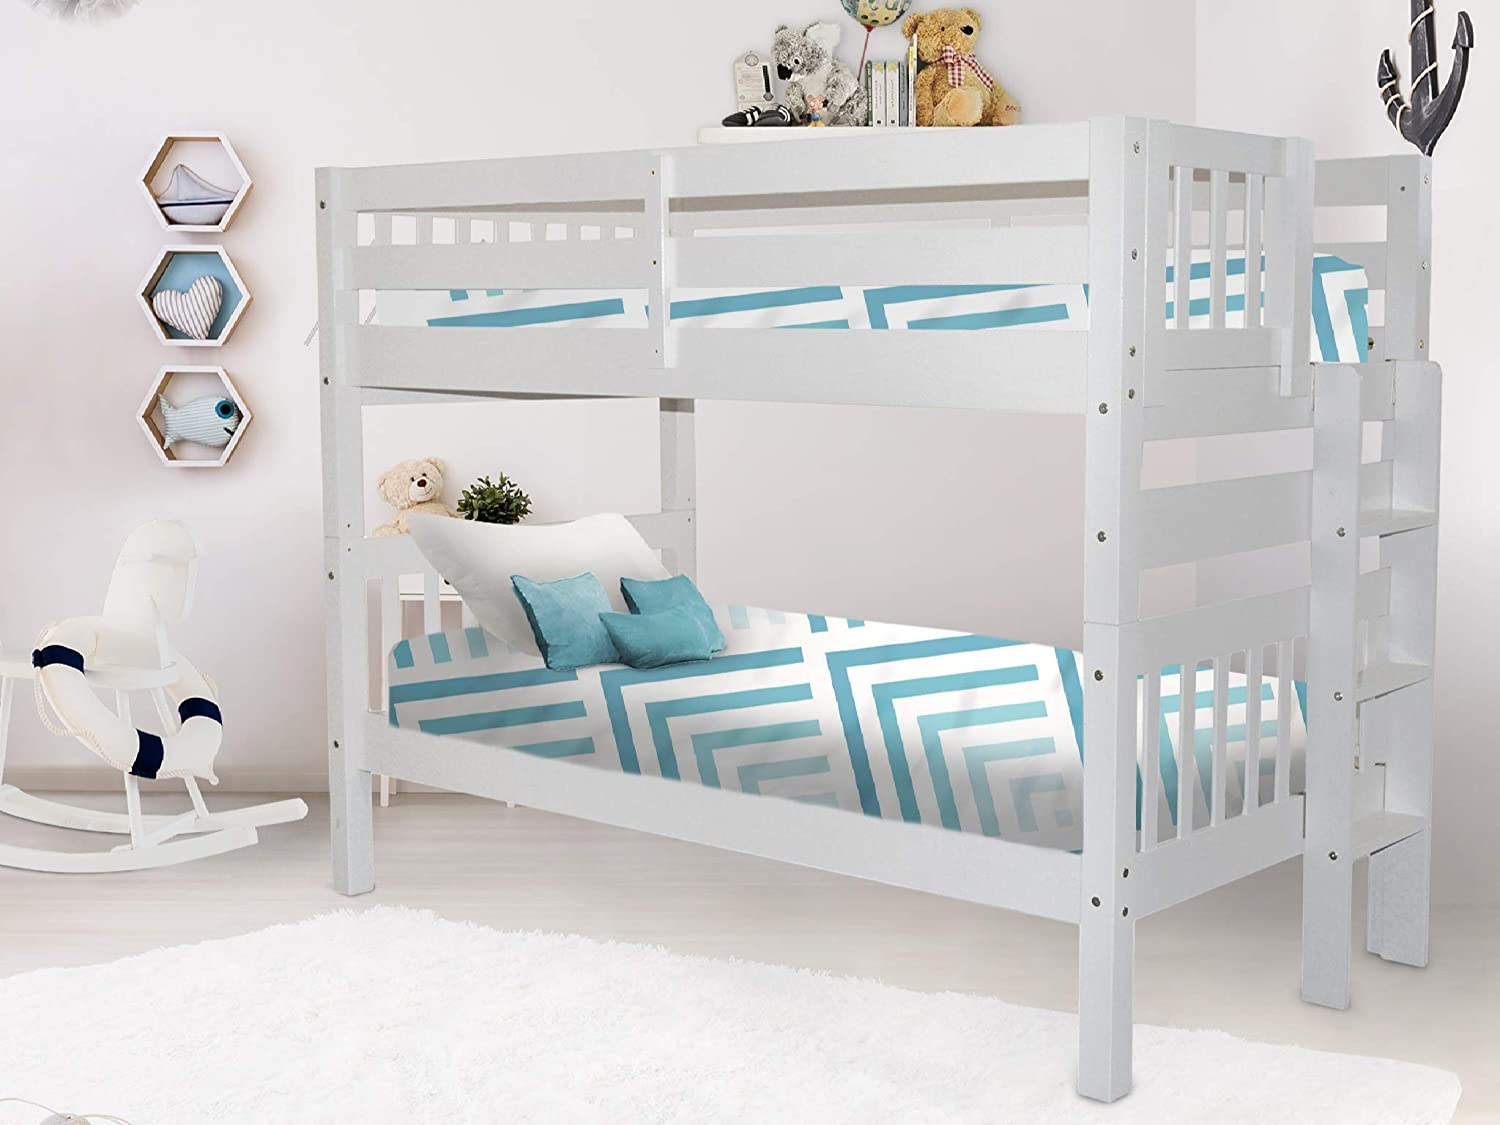 Amazon Com Bedz King Bunk Bed Twin Over Twin With End Ladder White Furniture Decor